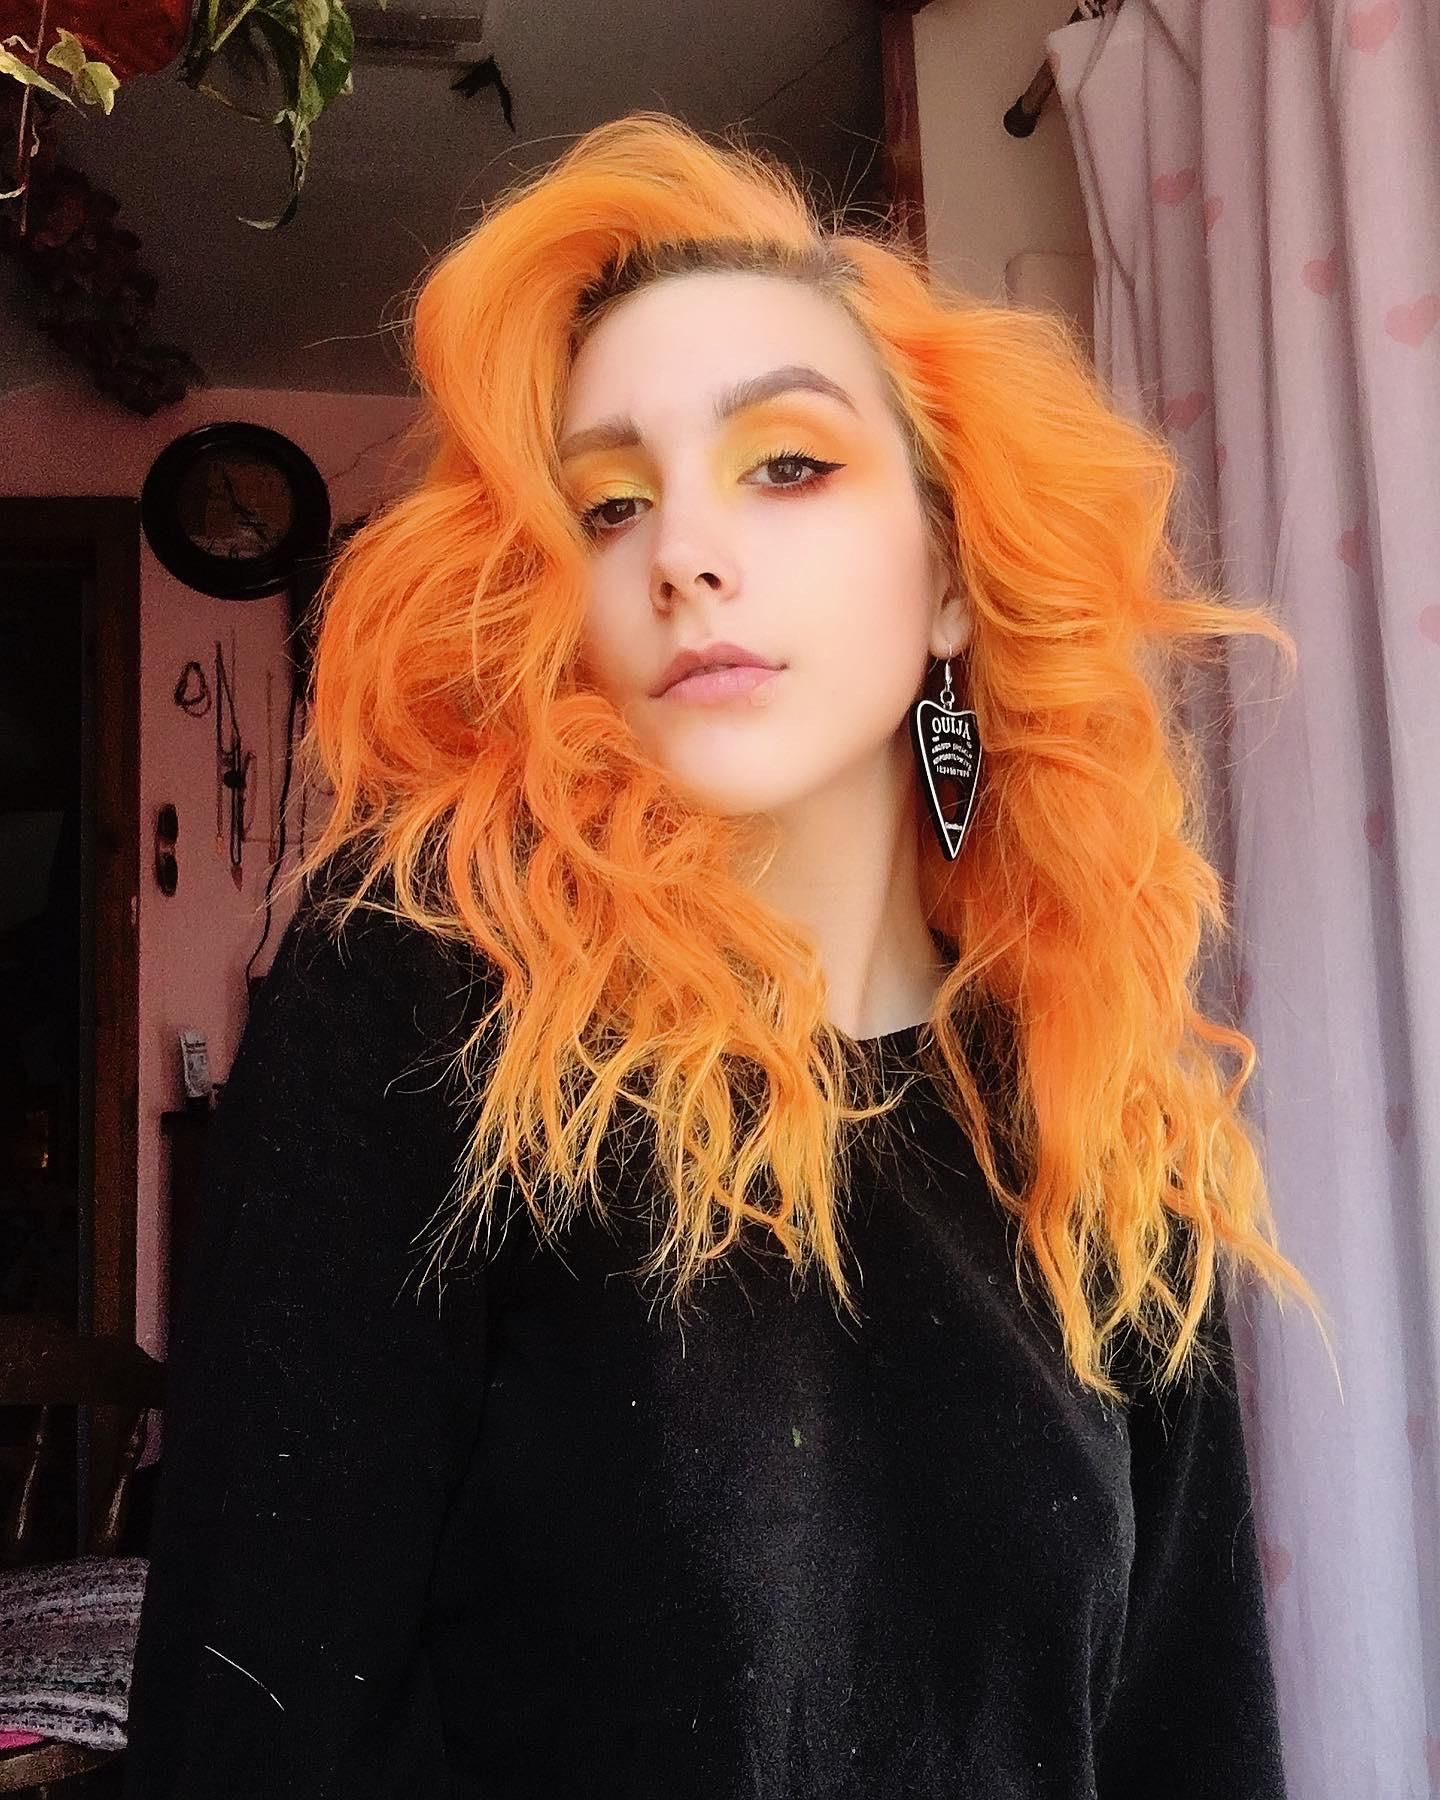 Just Wanted To Show Off My Orange Hair Hair Beauty Skin Deals Me Fashion Love Cute Style Women Makeup In 2020 Hair Celebrity Hair Colors Orange Hair